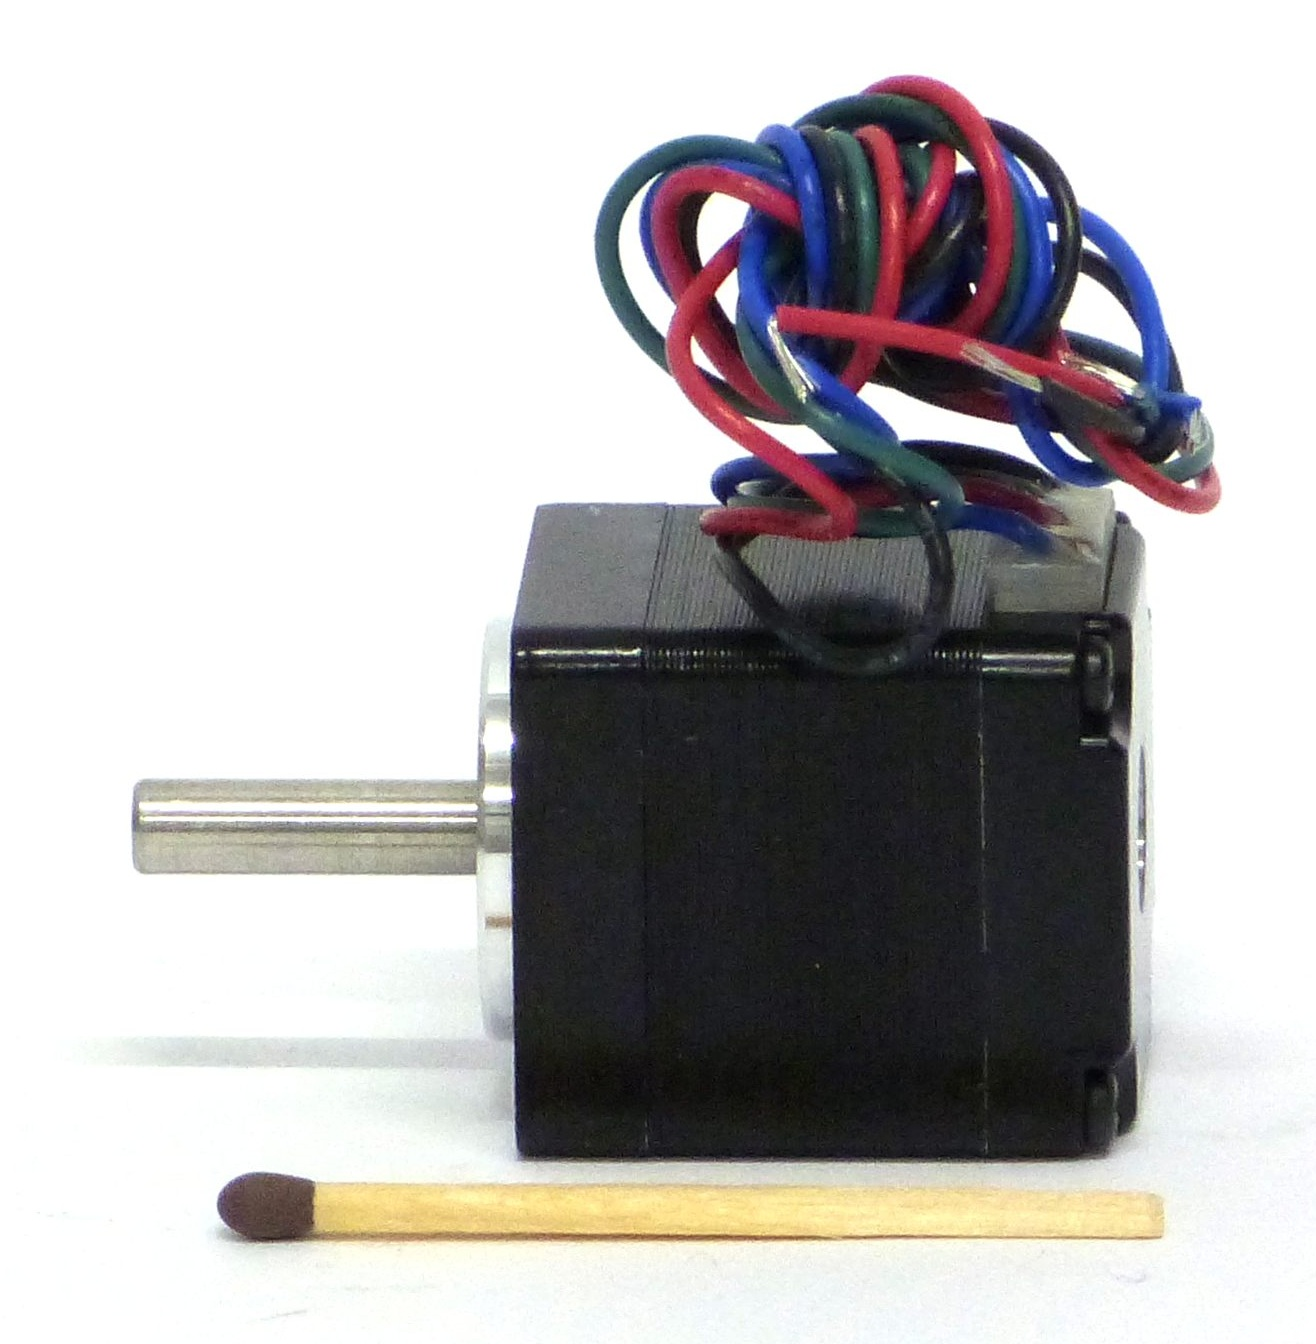 Stepper Motor Mini Mst11x 28mm